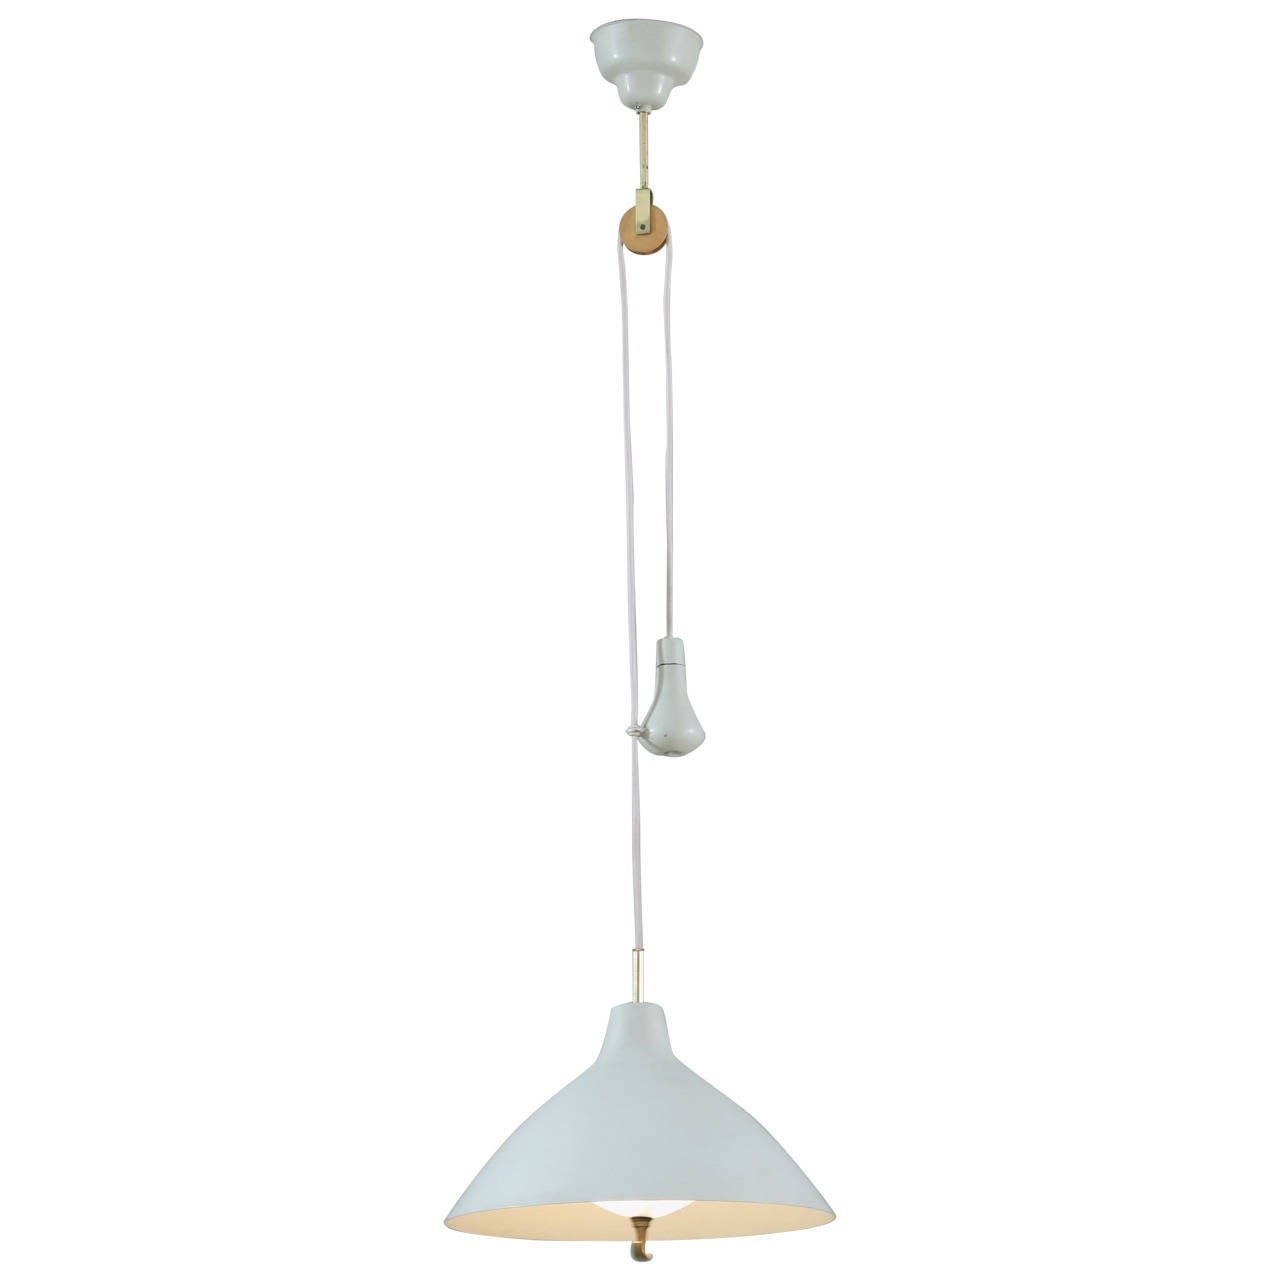 Lacquered ASEA pendant lamp with counterweight, 1950s